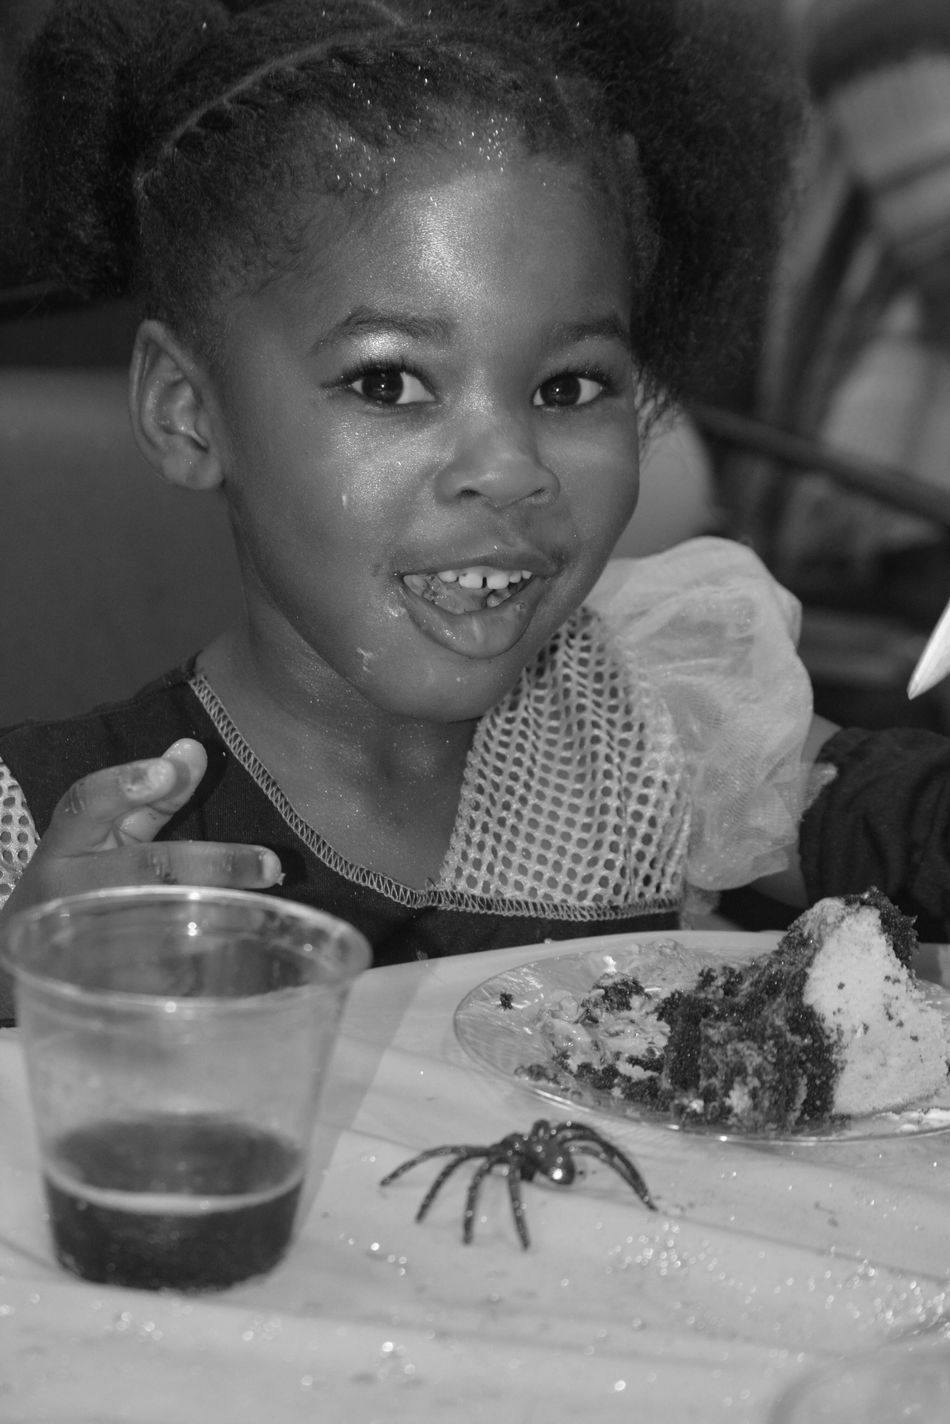 Baltimore Birthday Girl Birthday Party Church Fort Meade Kids Kidsphotography Laurel  Leading Lines Marquez Ball Maryland Pastor Ball Sea Cadets Shades Of Grey Sunglasses Twins UpLift Church